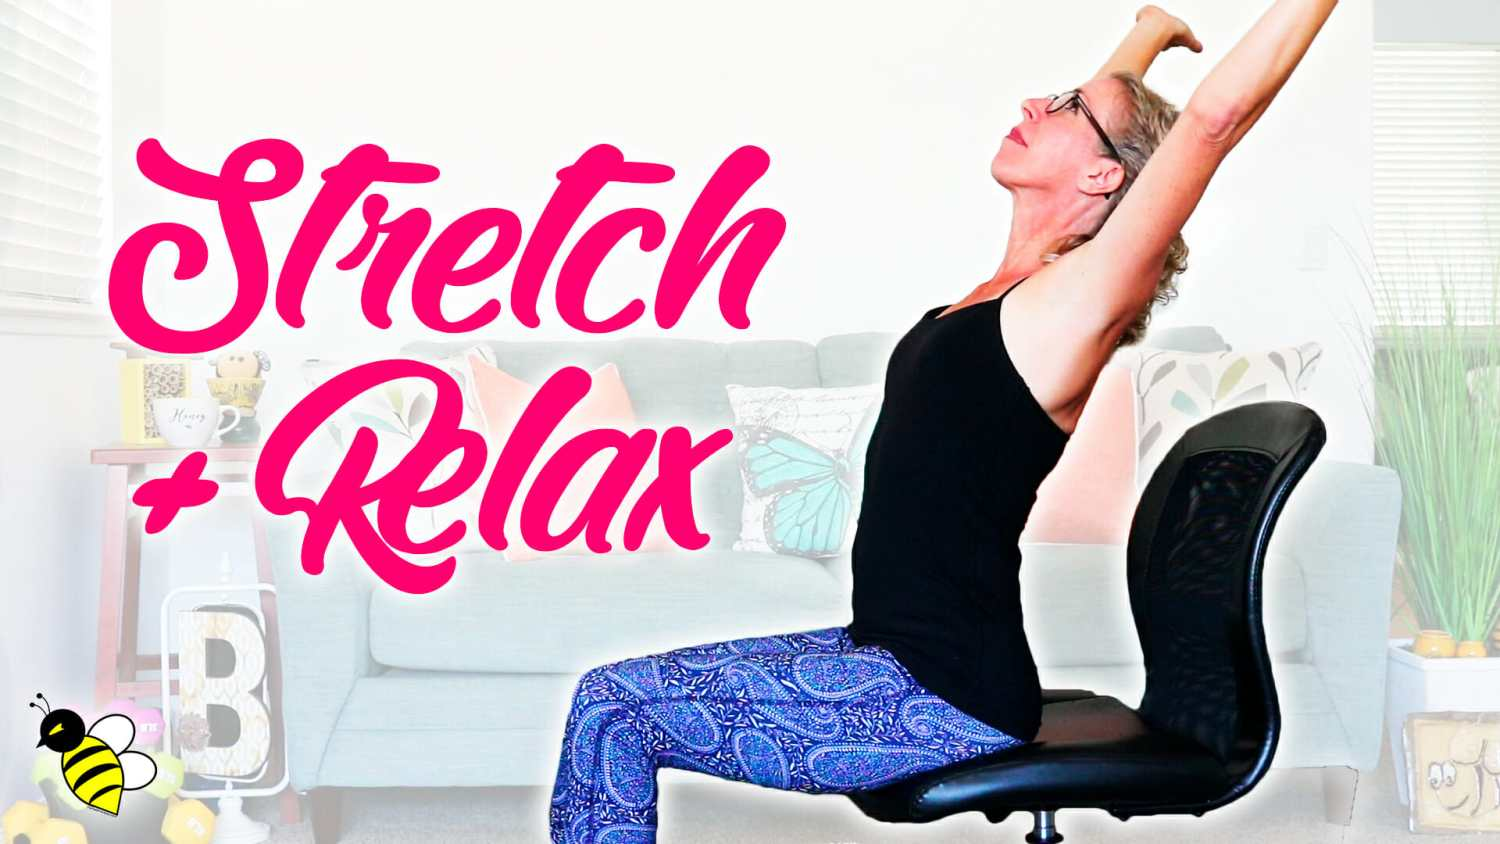 SEATED Self Care 💛 Flexibility + Relaxation